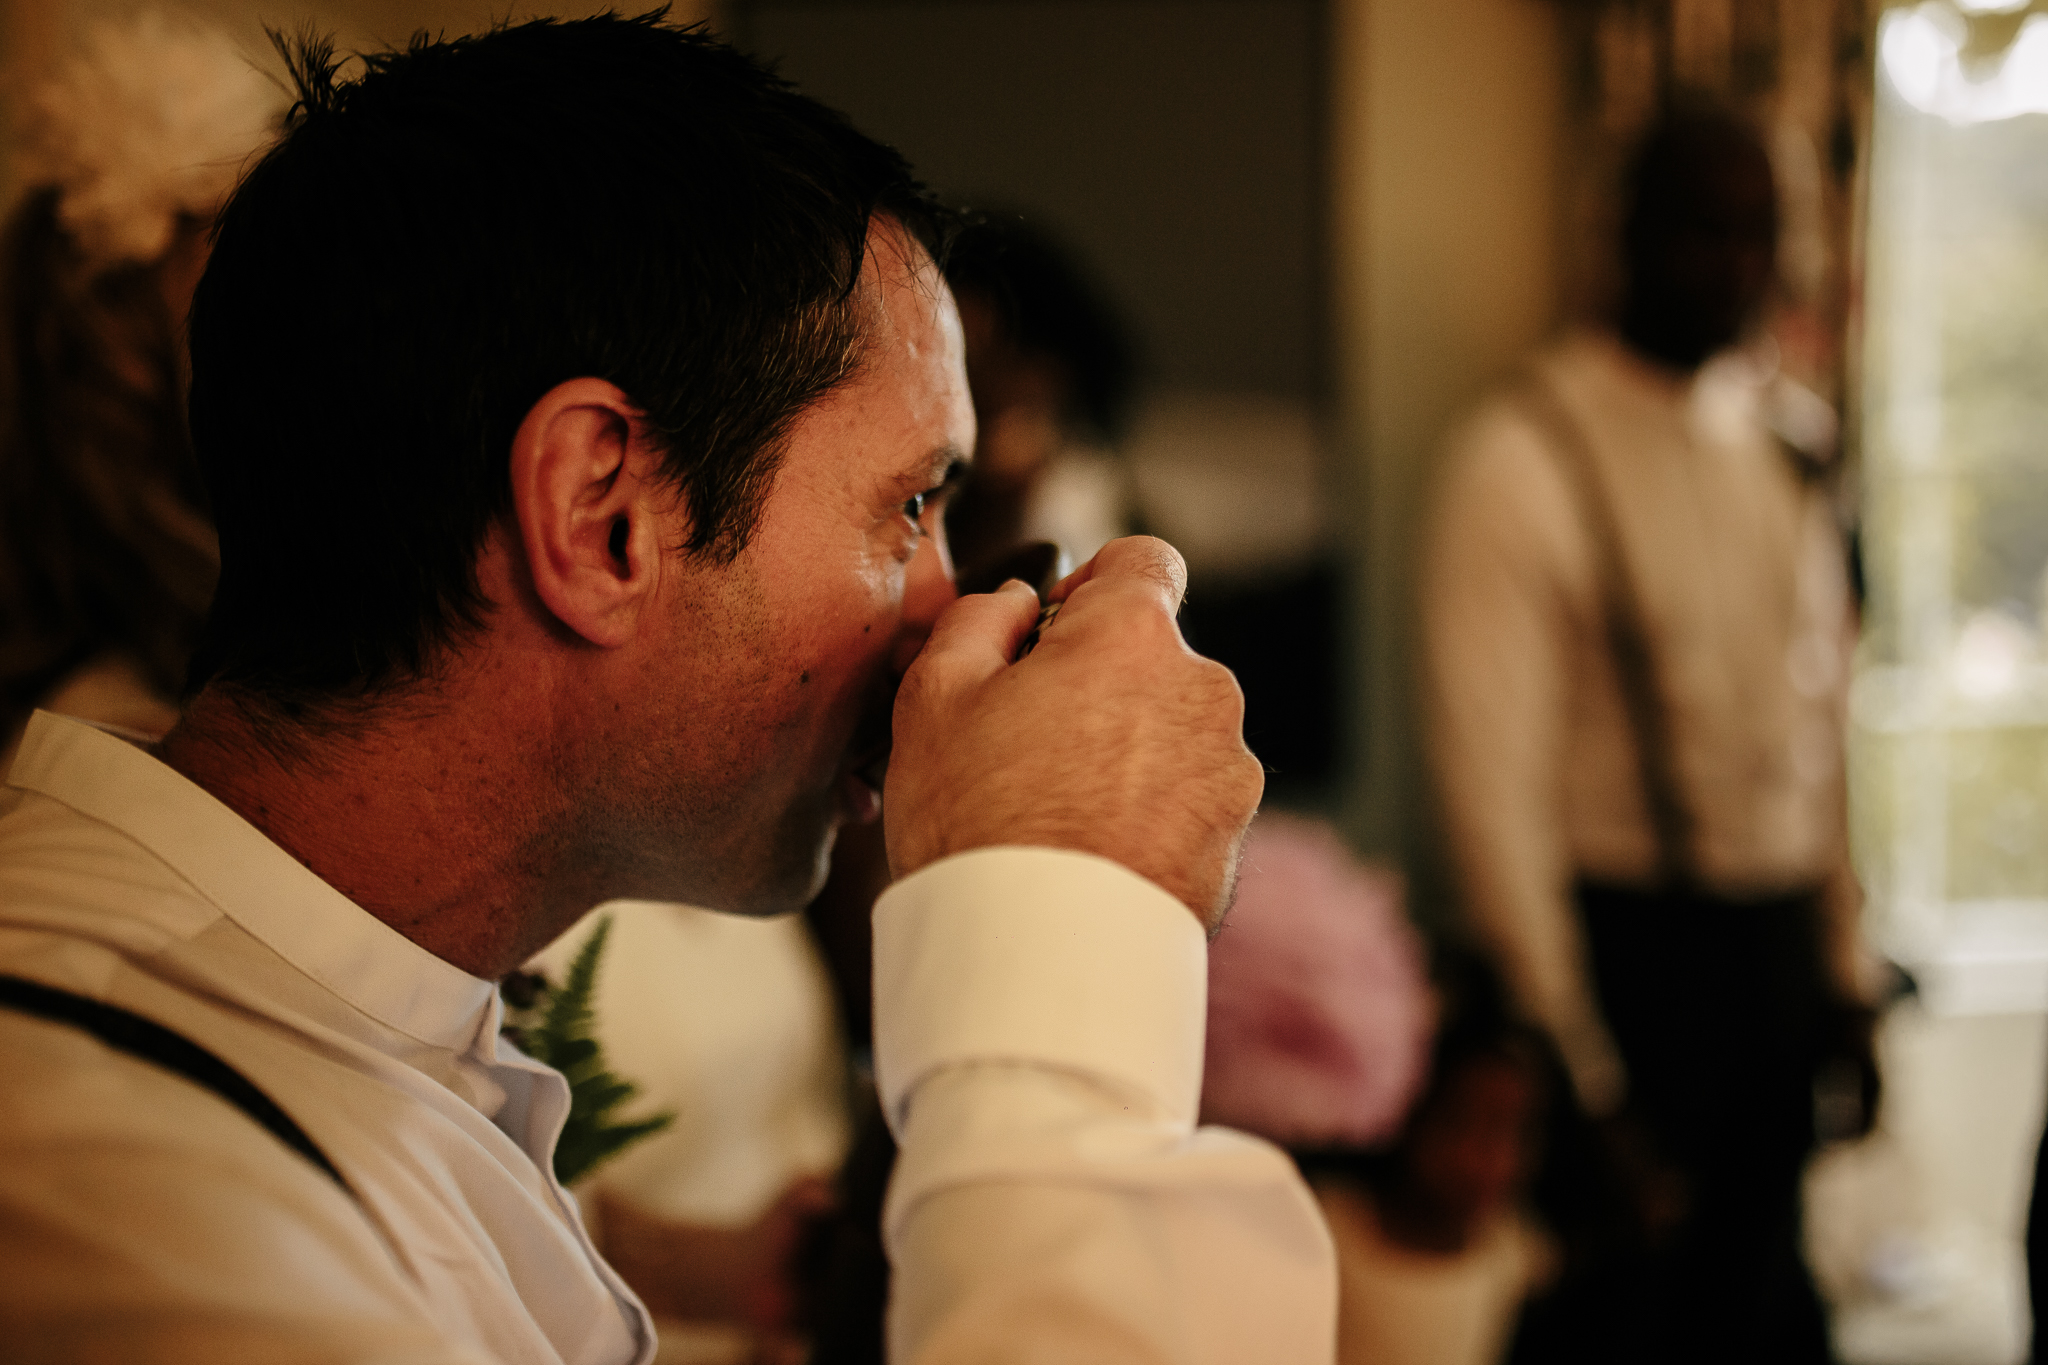 Victoria & Jamie - WeddingsbyQay - Wedding Photographer (109 of 209).jpg